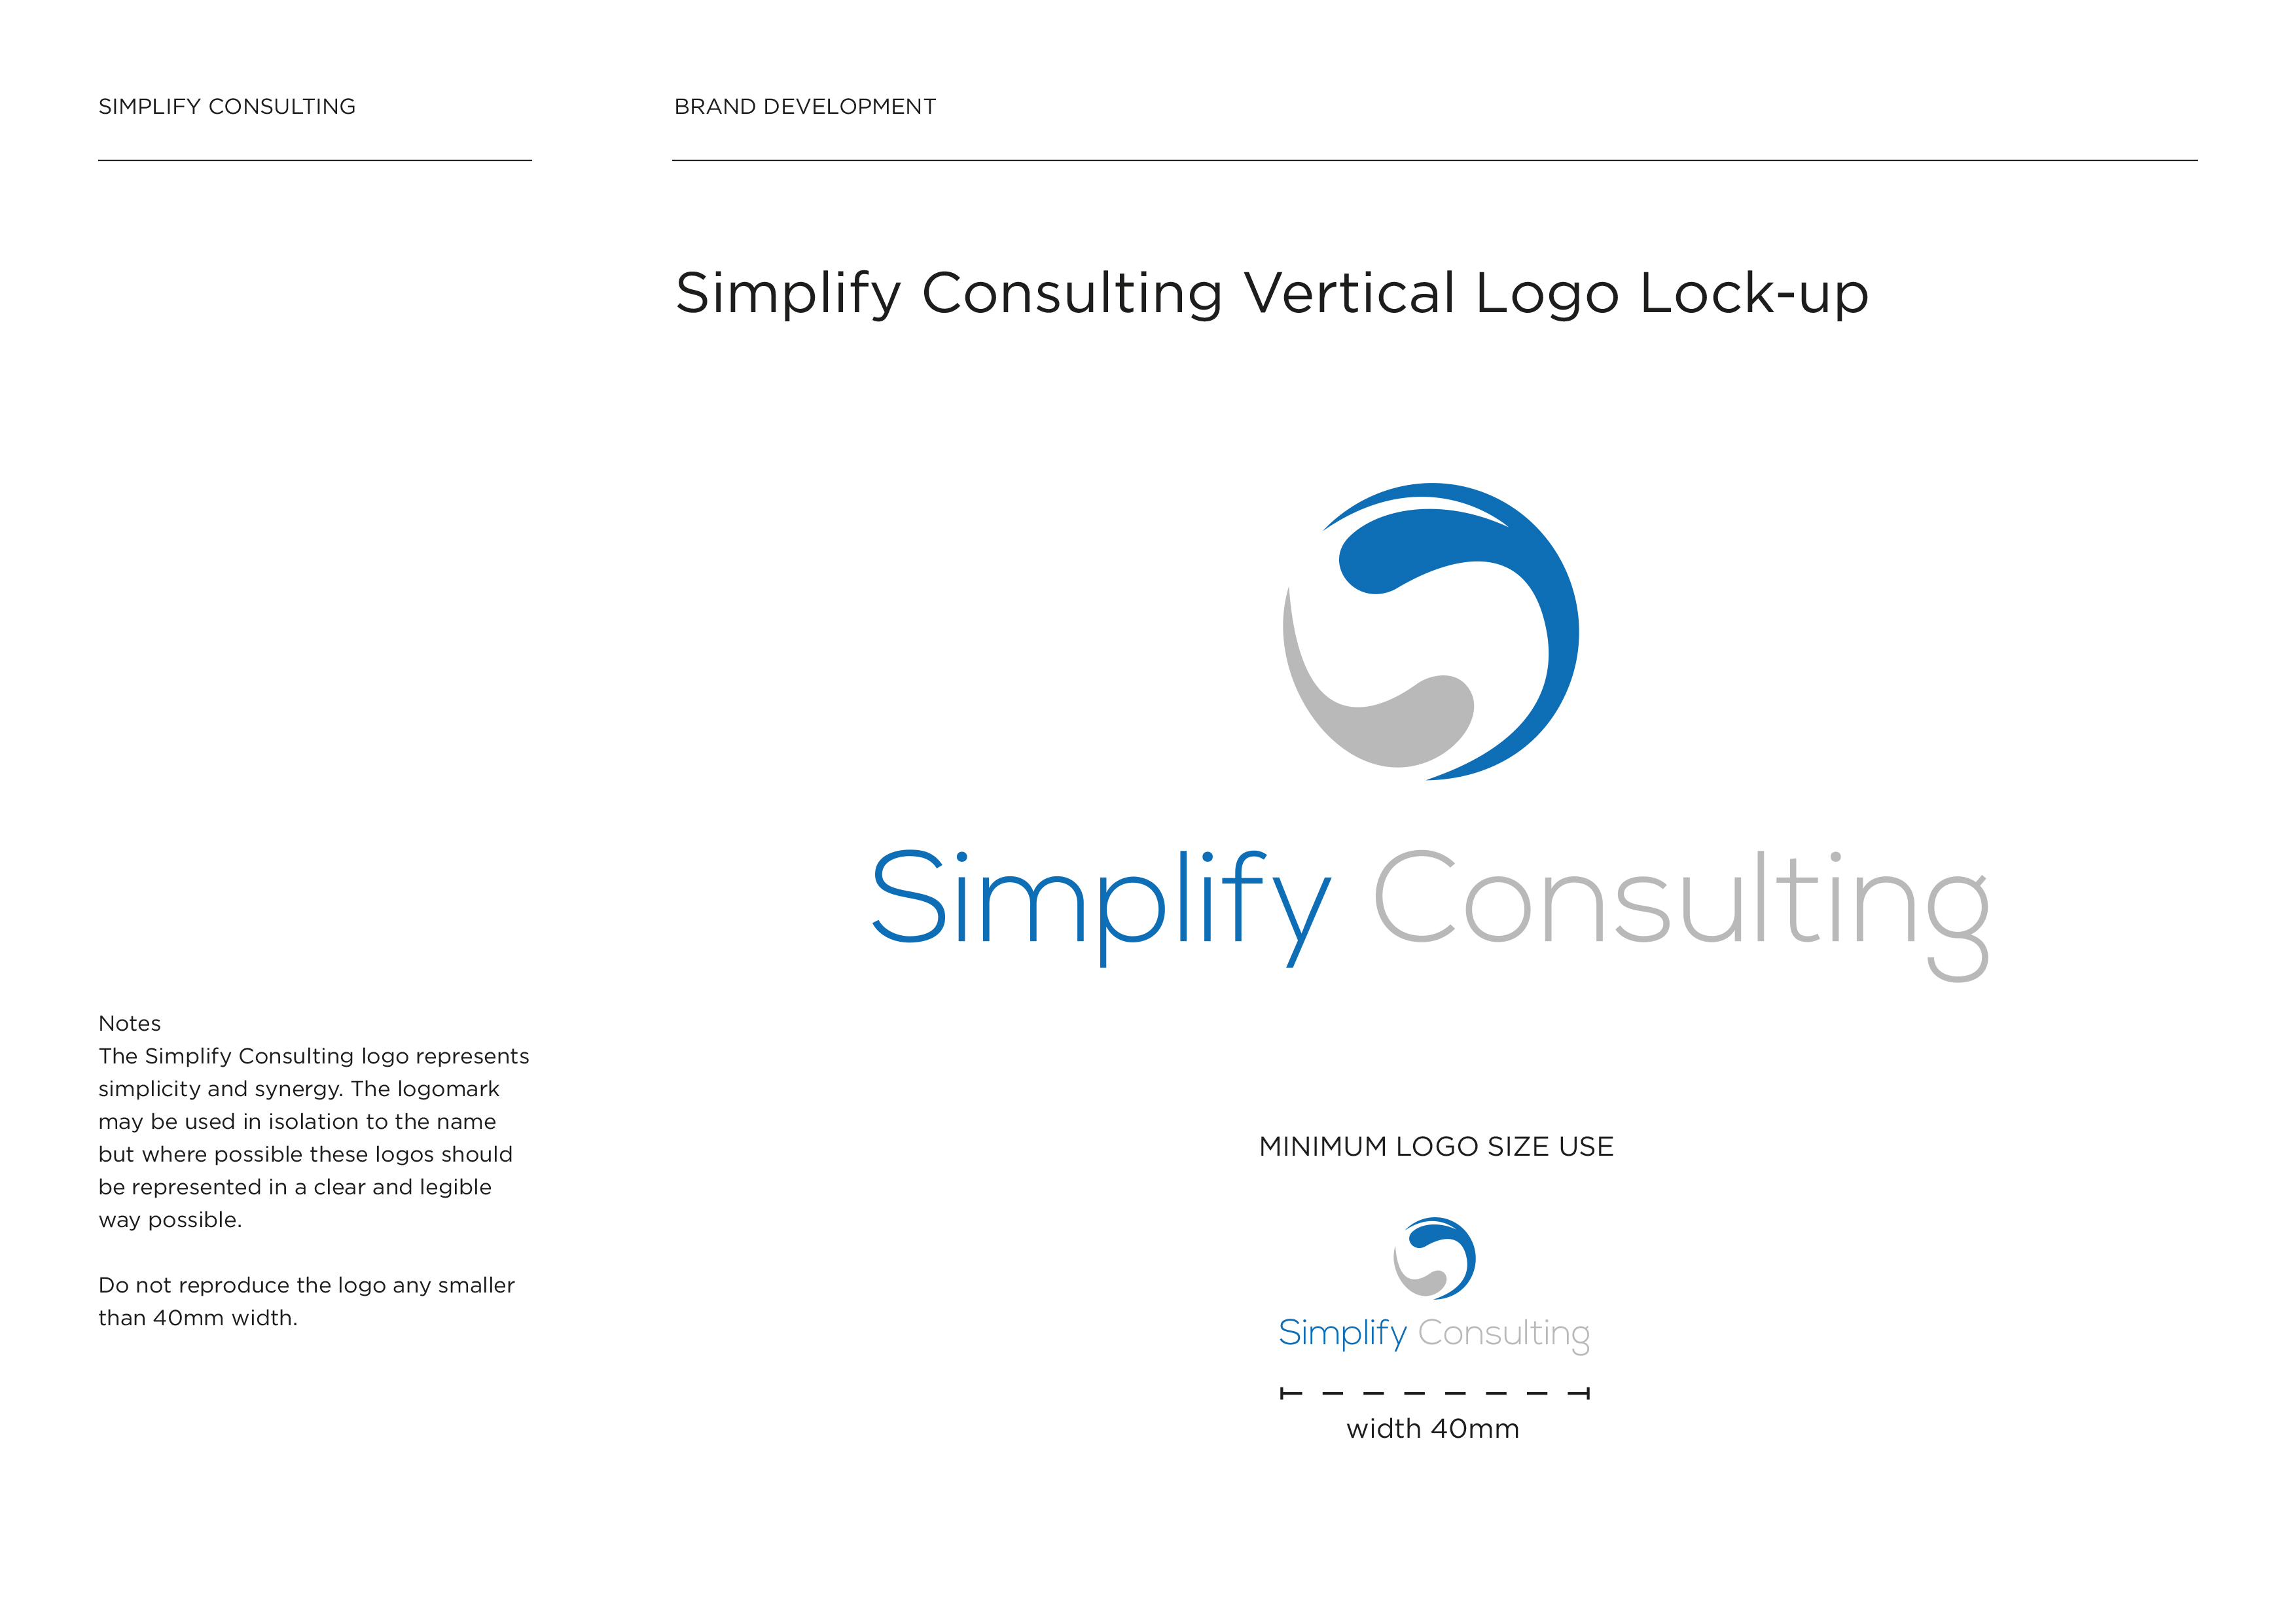 Simplify Consulting Guidelines